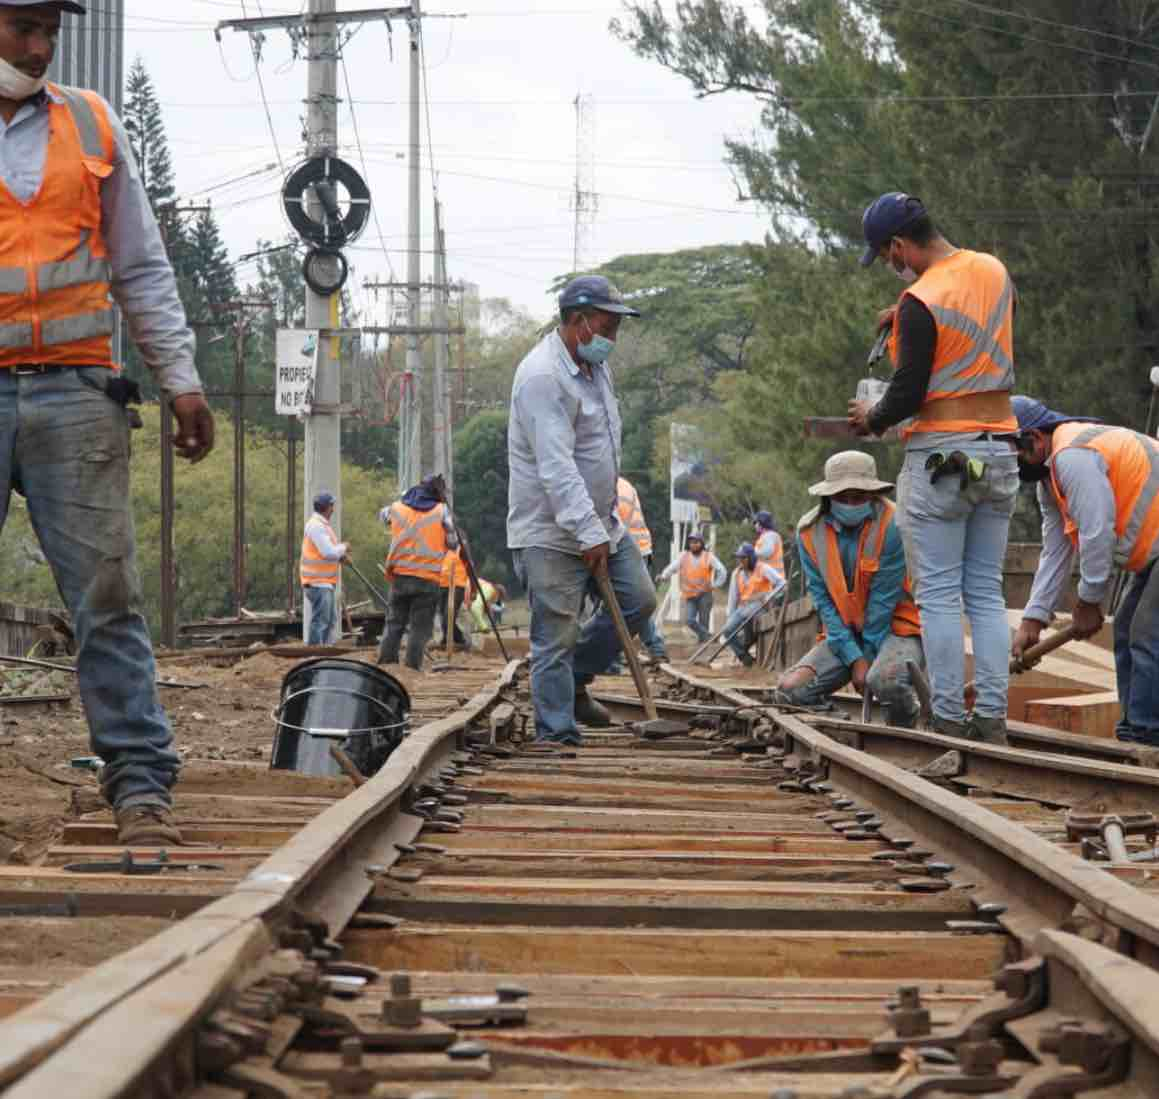 Guatemala to connect with Mexico's Maya train 'soon' – minister